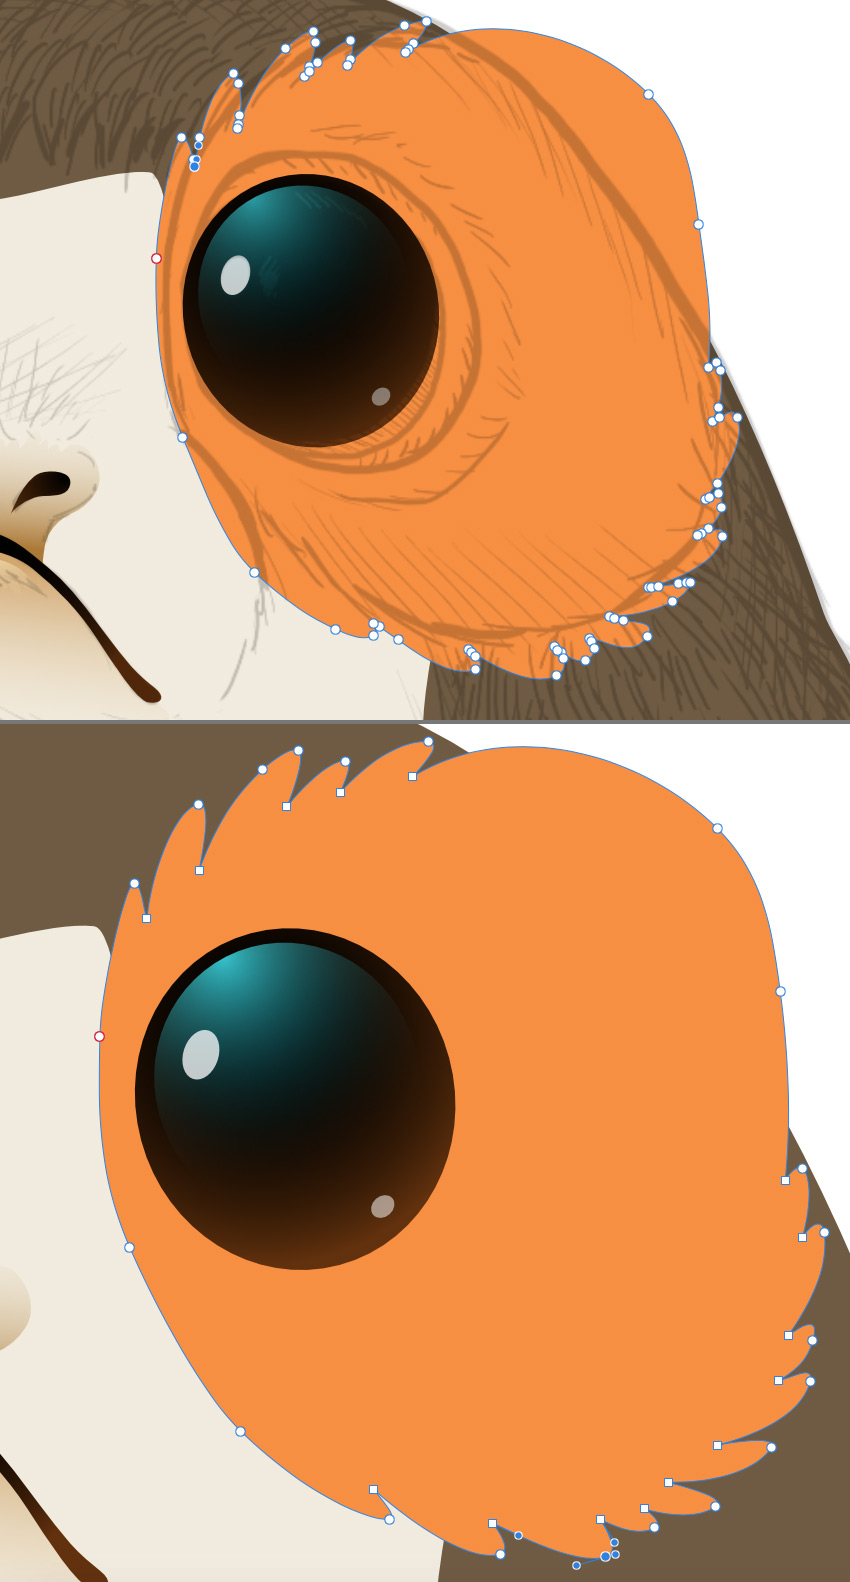 Draw a feathered shape around the eye